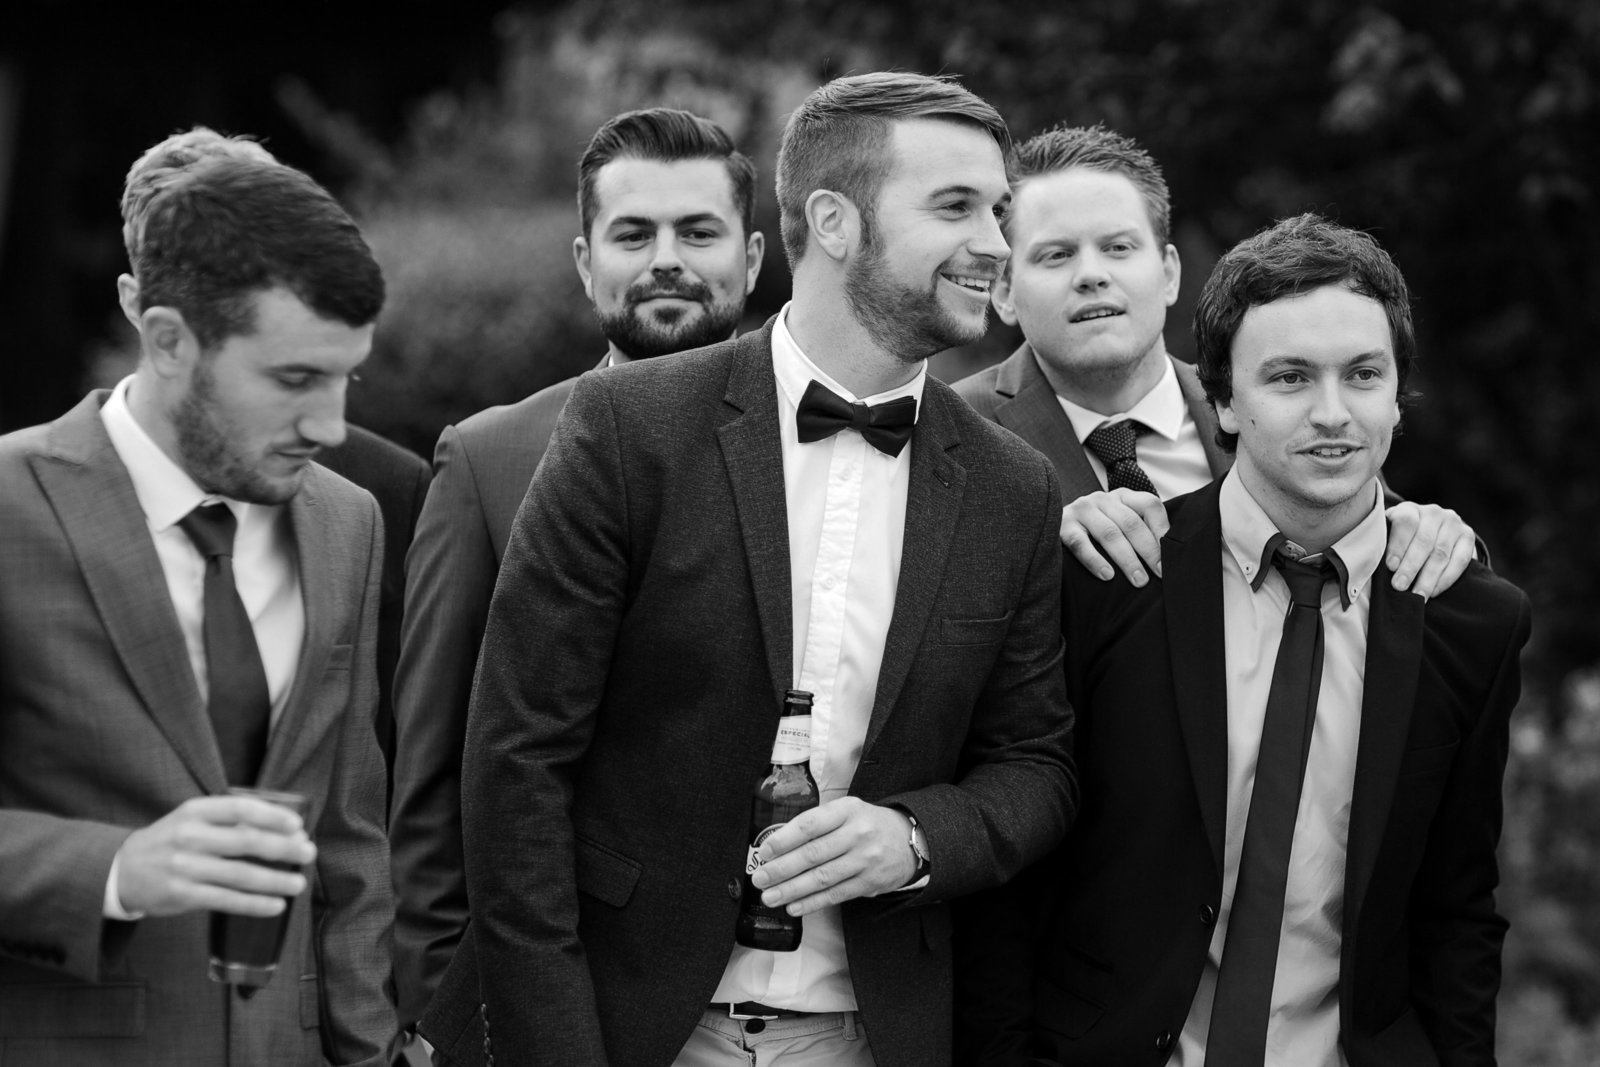 adorlee-117-wedding-photographer-chichester-west-sussex